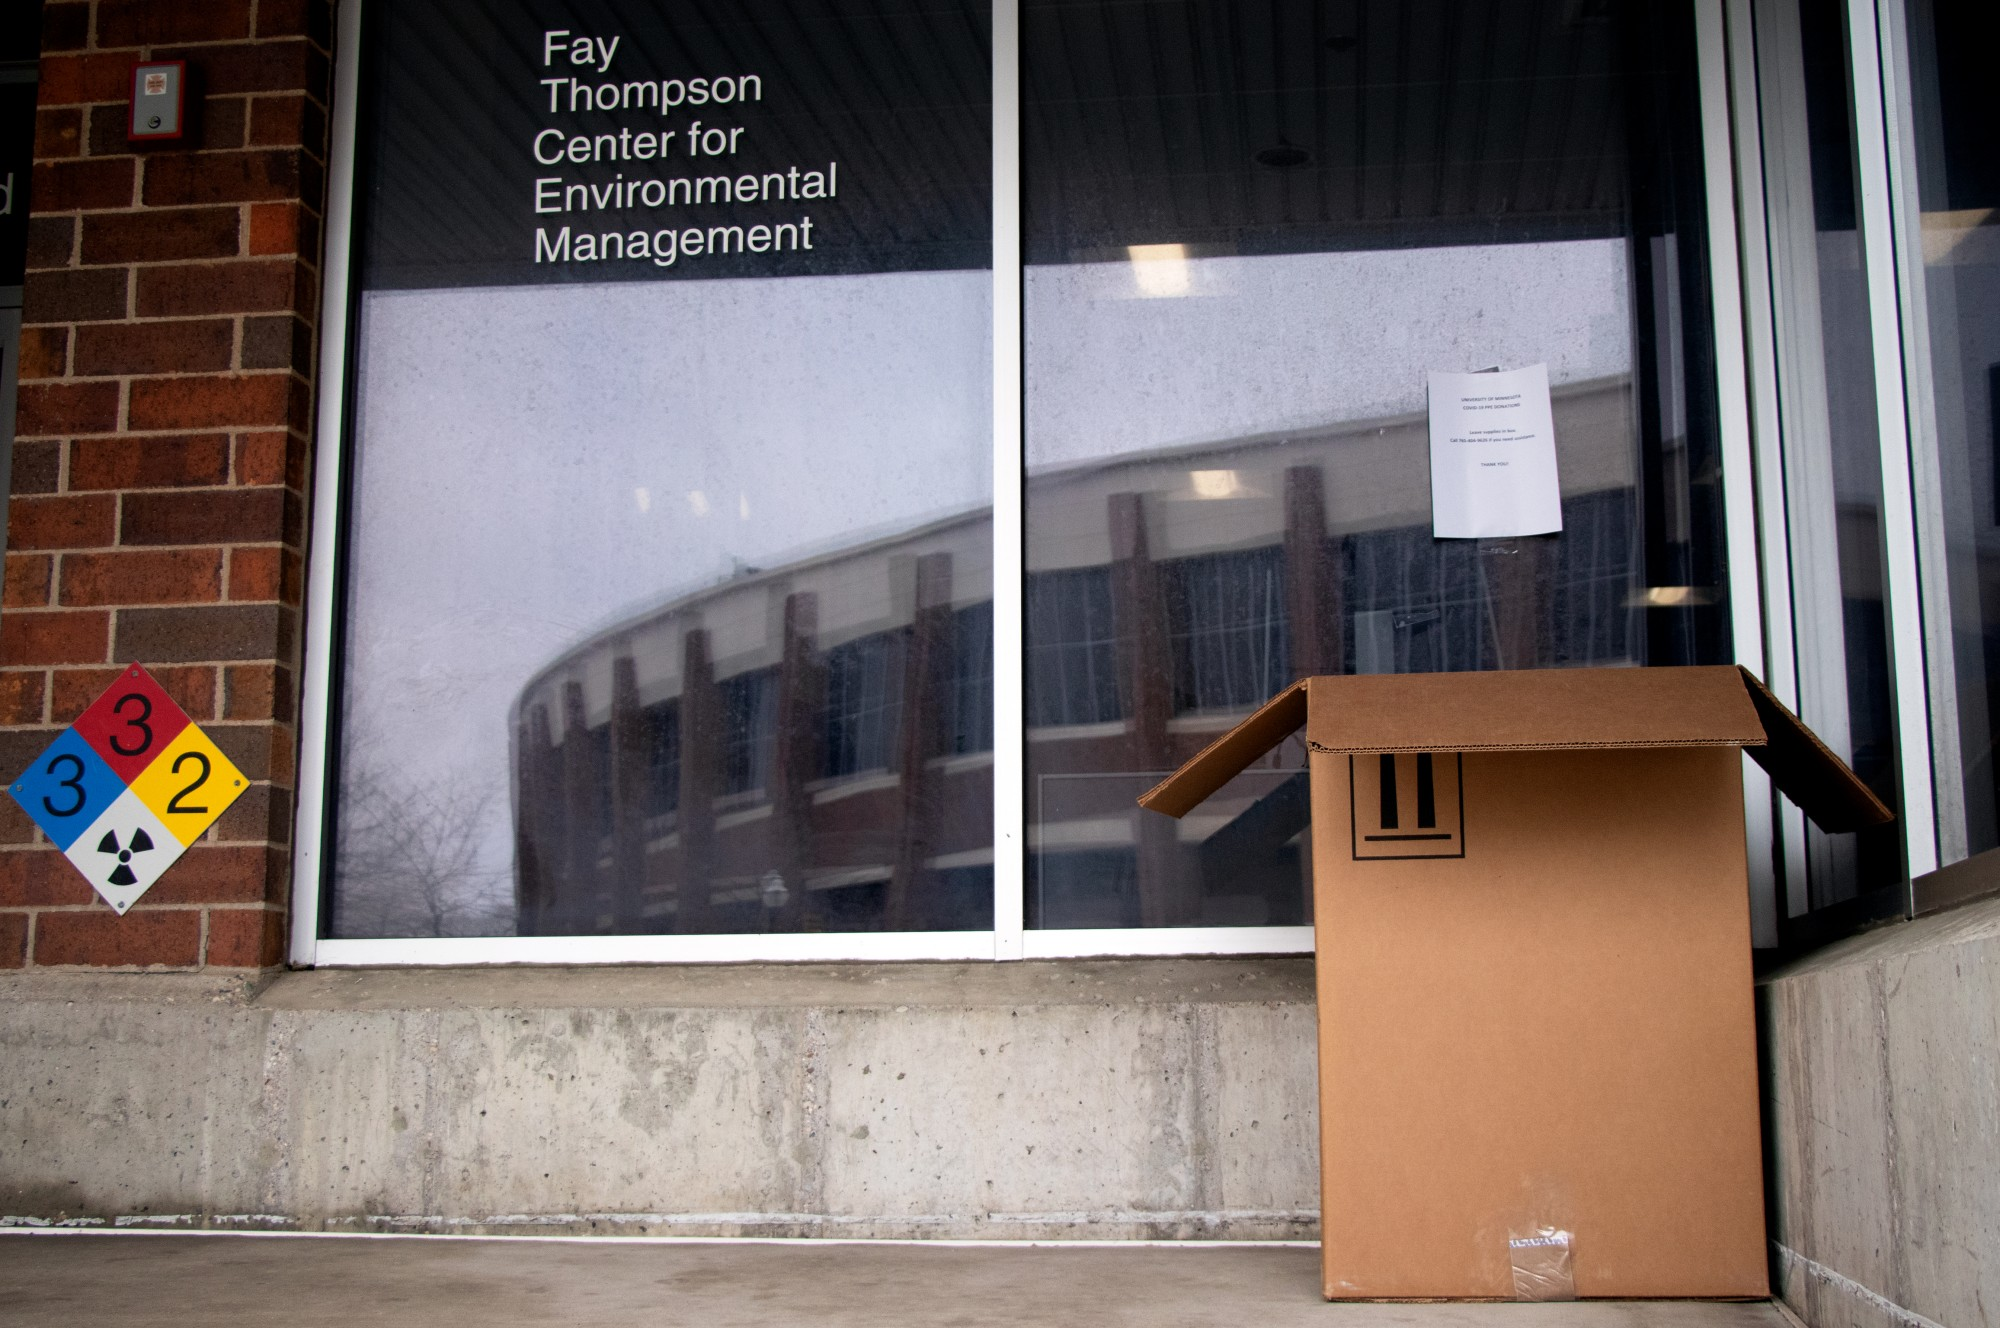 A community collection box for COVID-19 PPE donations sits outside of the Fay Thompson Center for Environmental Management on Tuesday, April 7. This collection is part of a larger campus effort to consolidate PPE and provide it to healthcare workers.